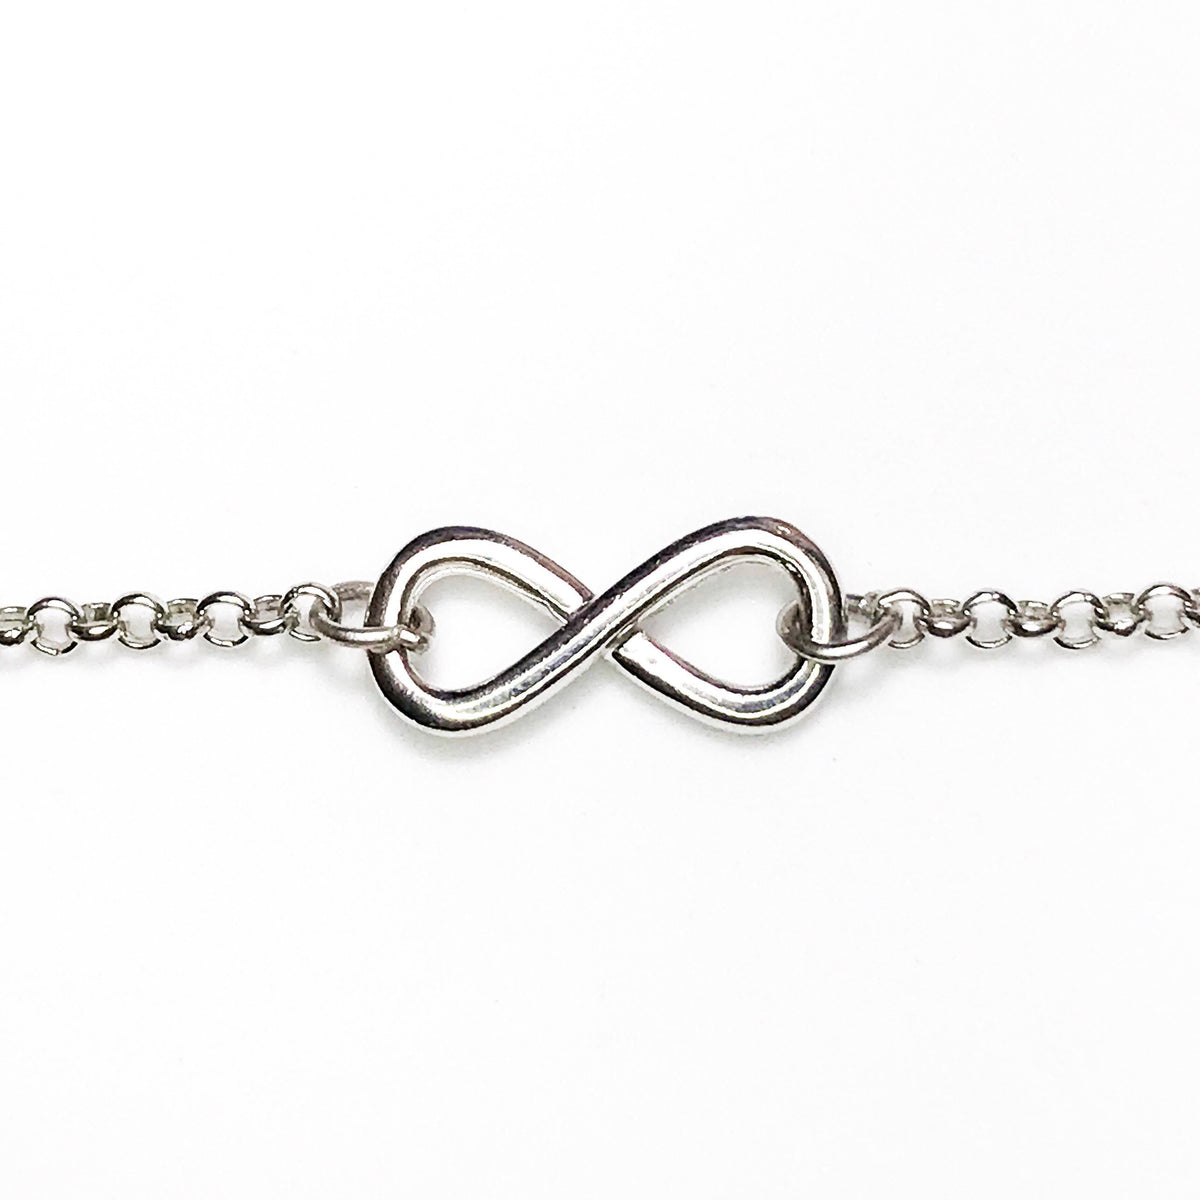 NEW 14k White Layer On 925 Silver Cz Infinity Link Bracelet 1.9 mm -7""